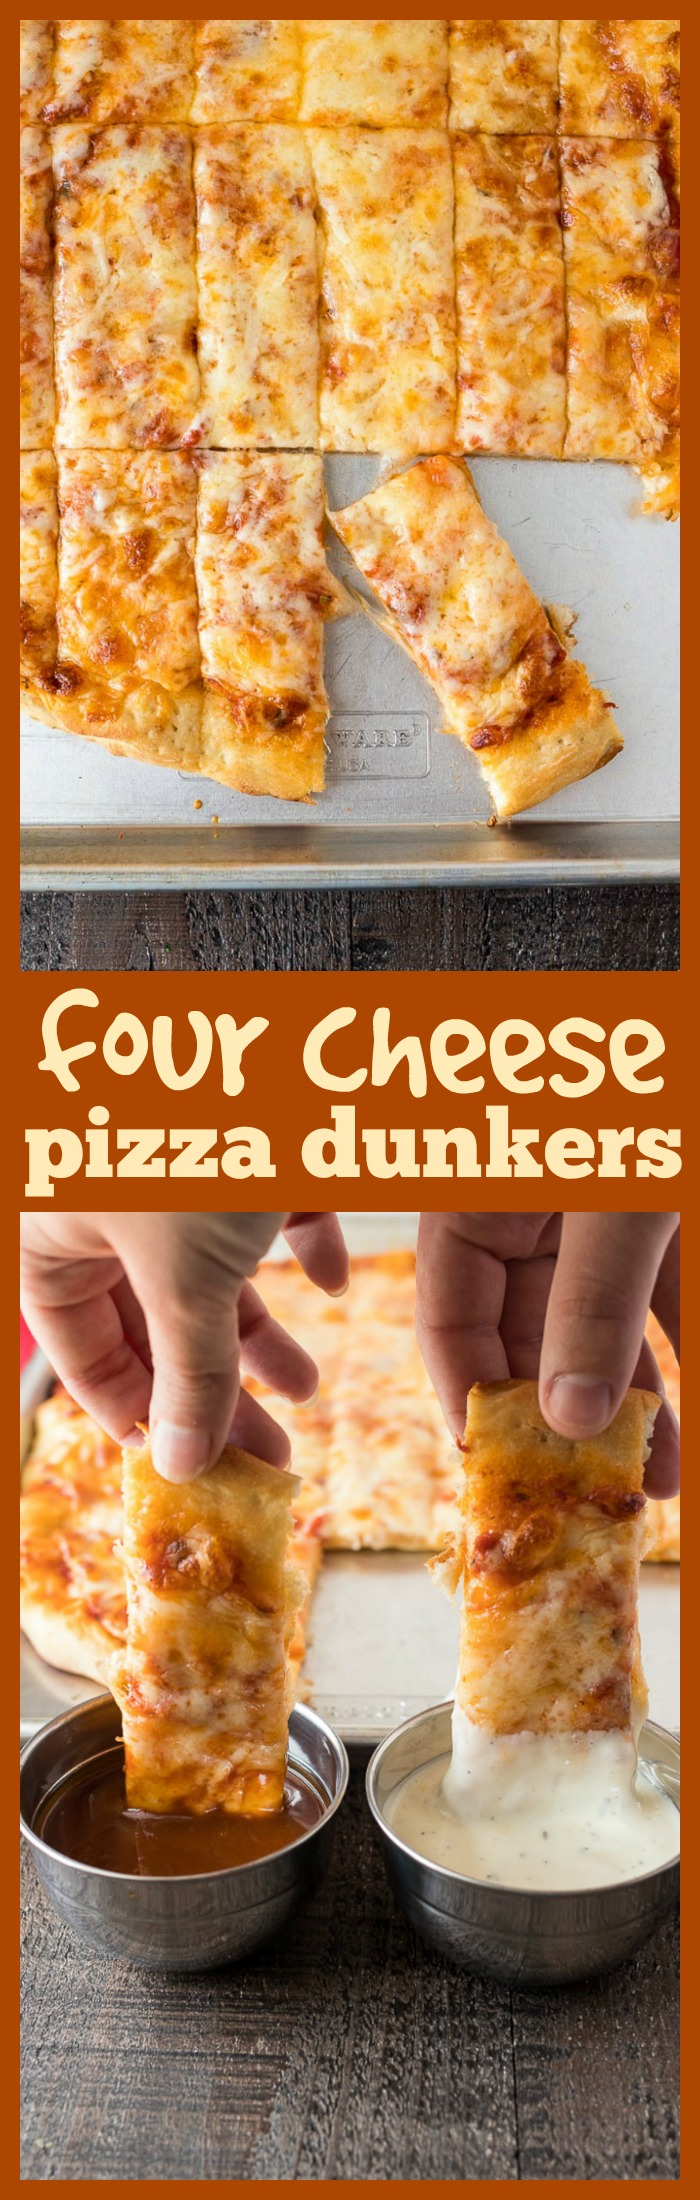 Four Cheese Pizza Dunkers photo collage